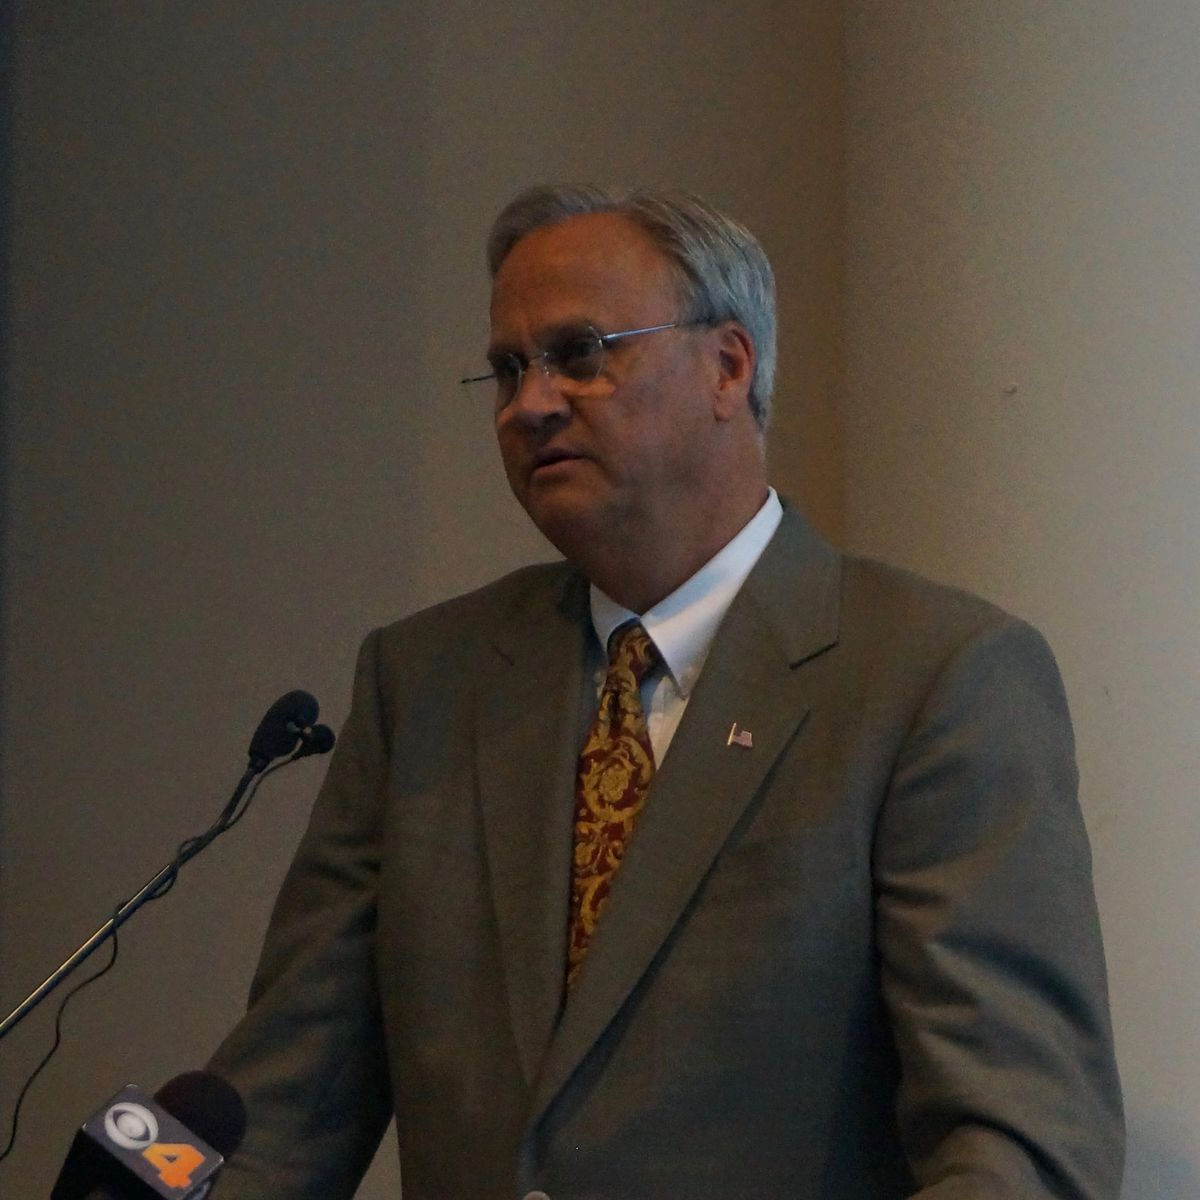 Jim Merritt at a forum hosted by Concerned Clergy and the Baptist Ministers Alliance.